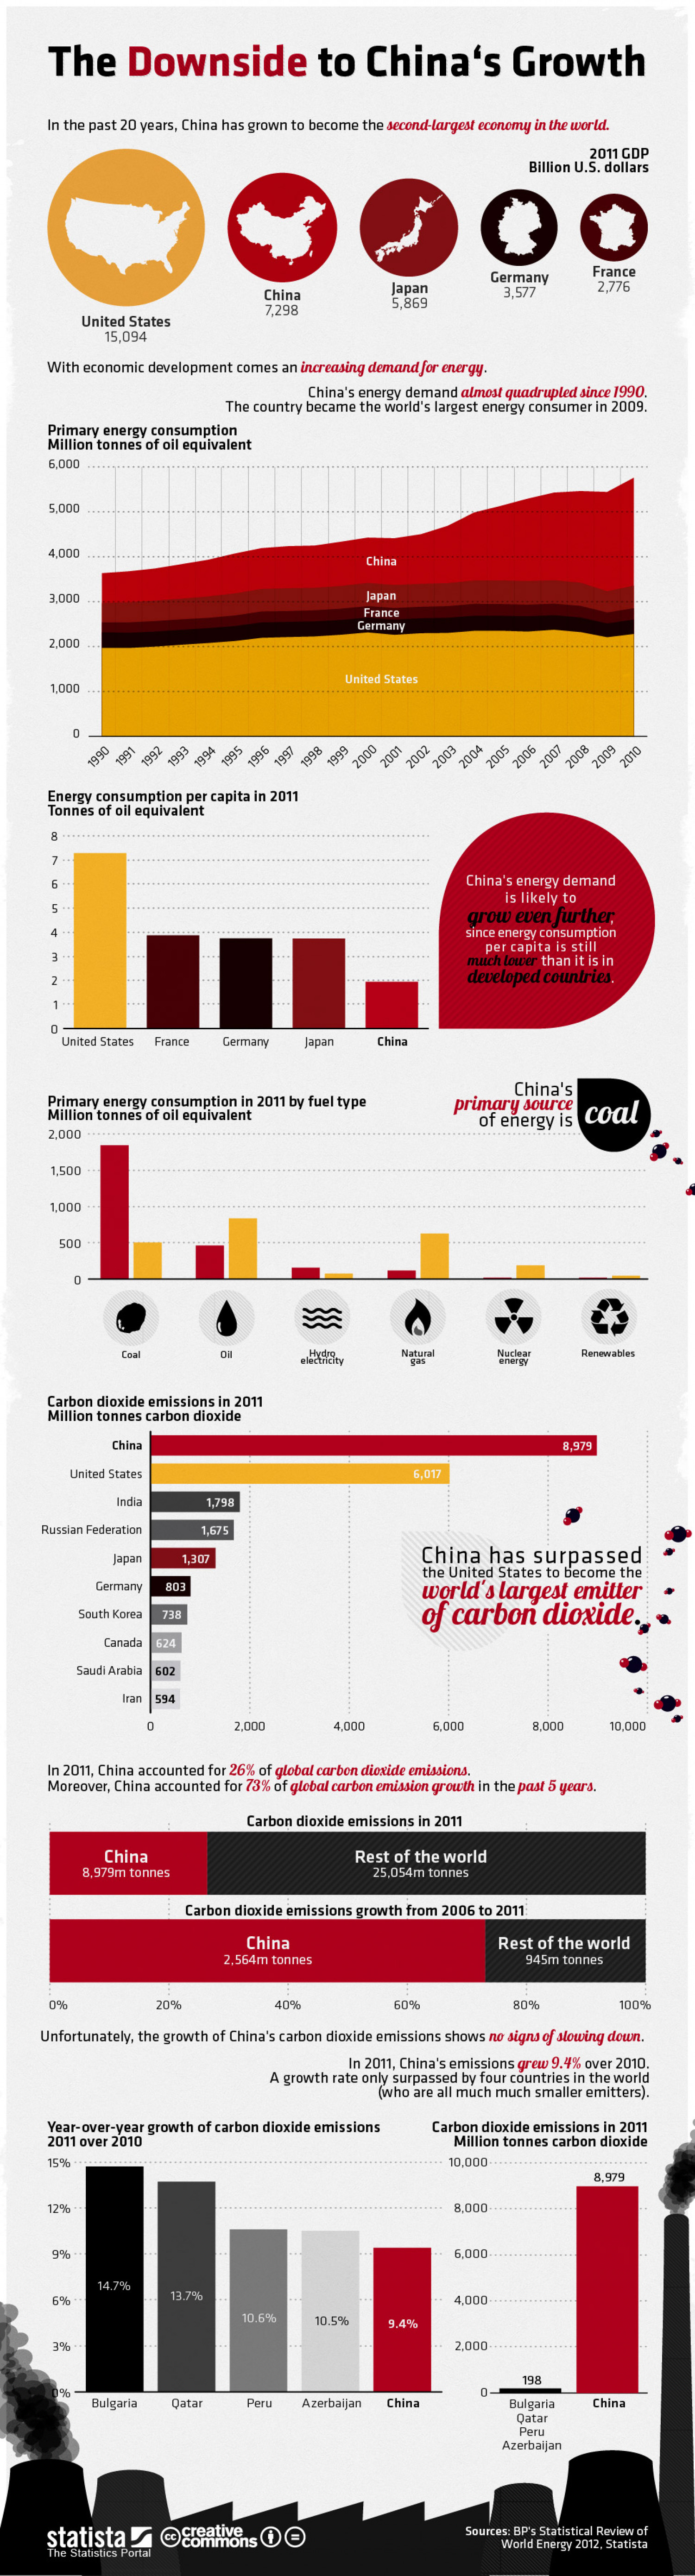 The Downside to China's Growth Infographic